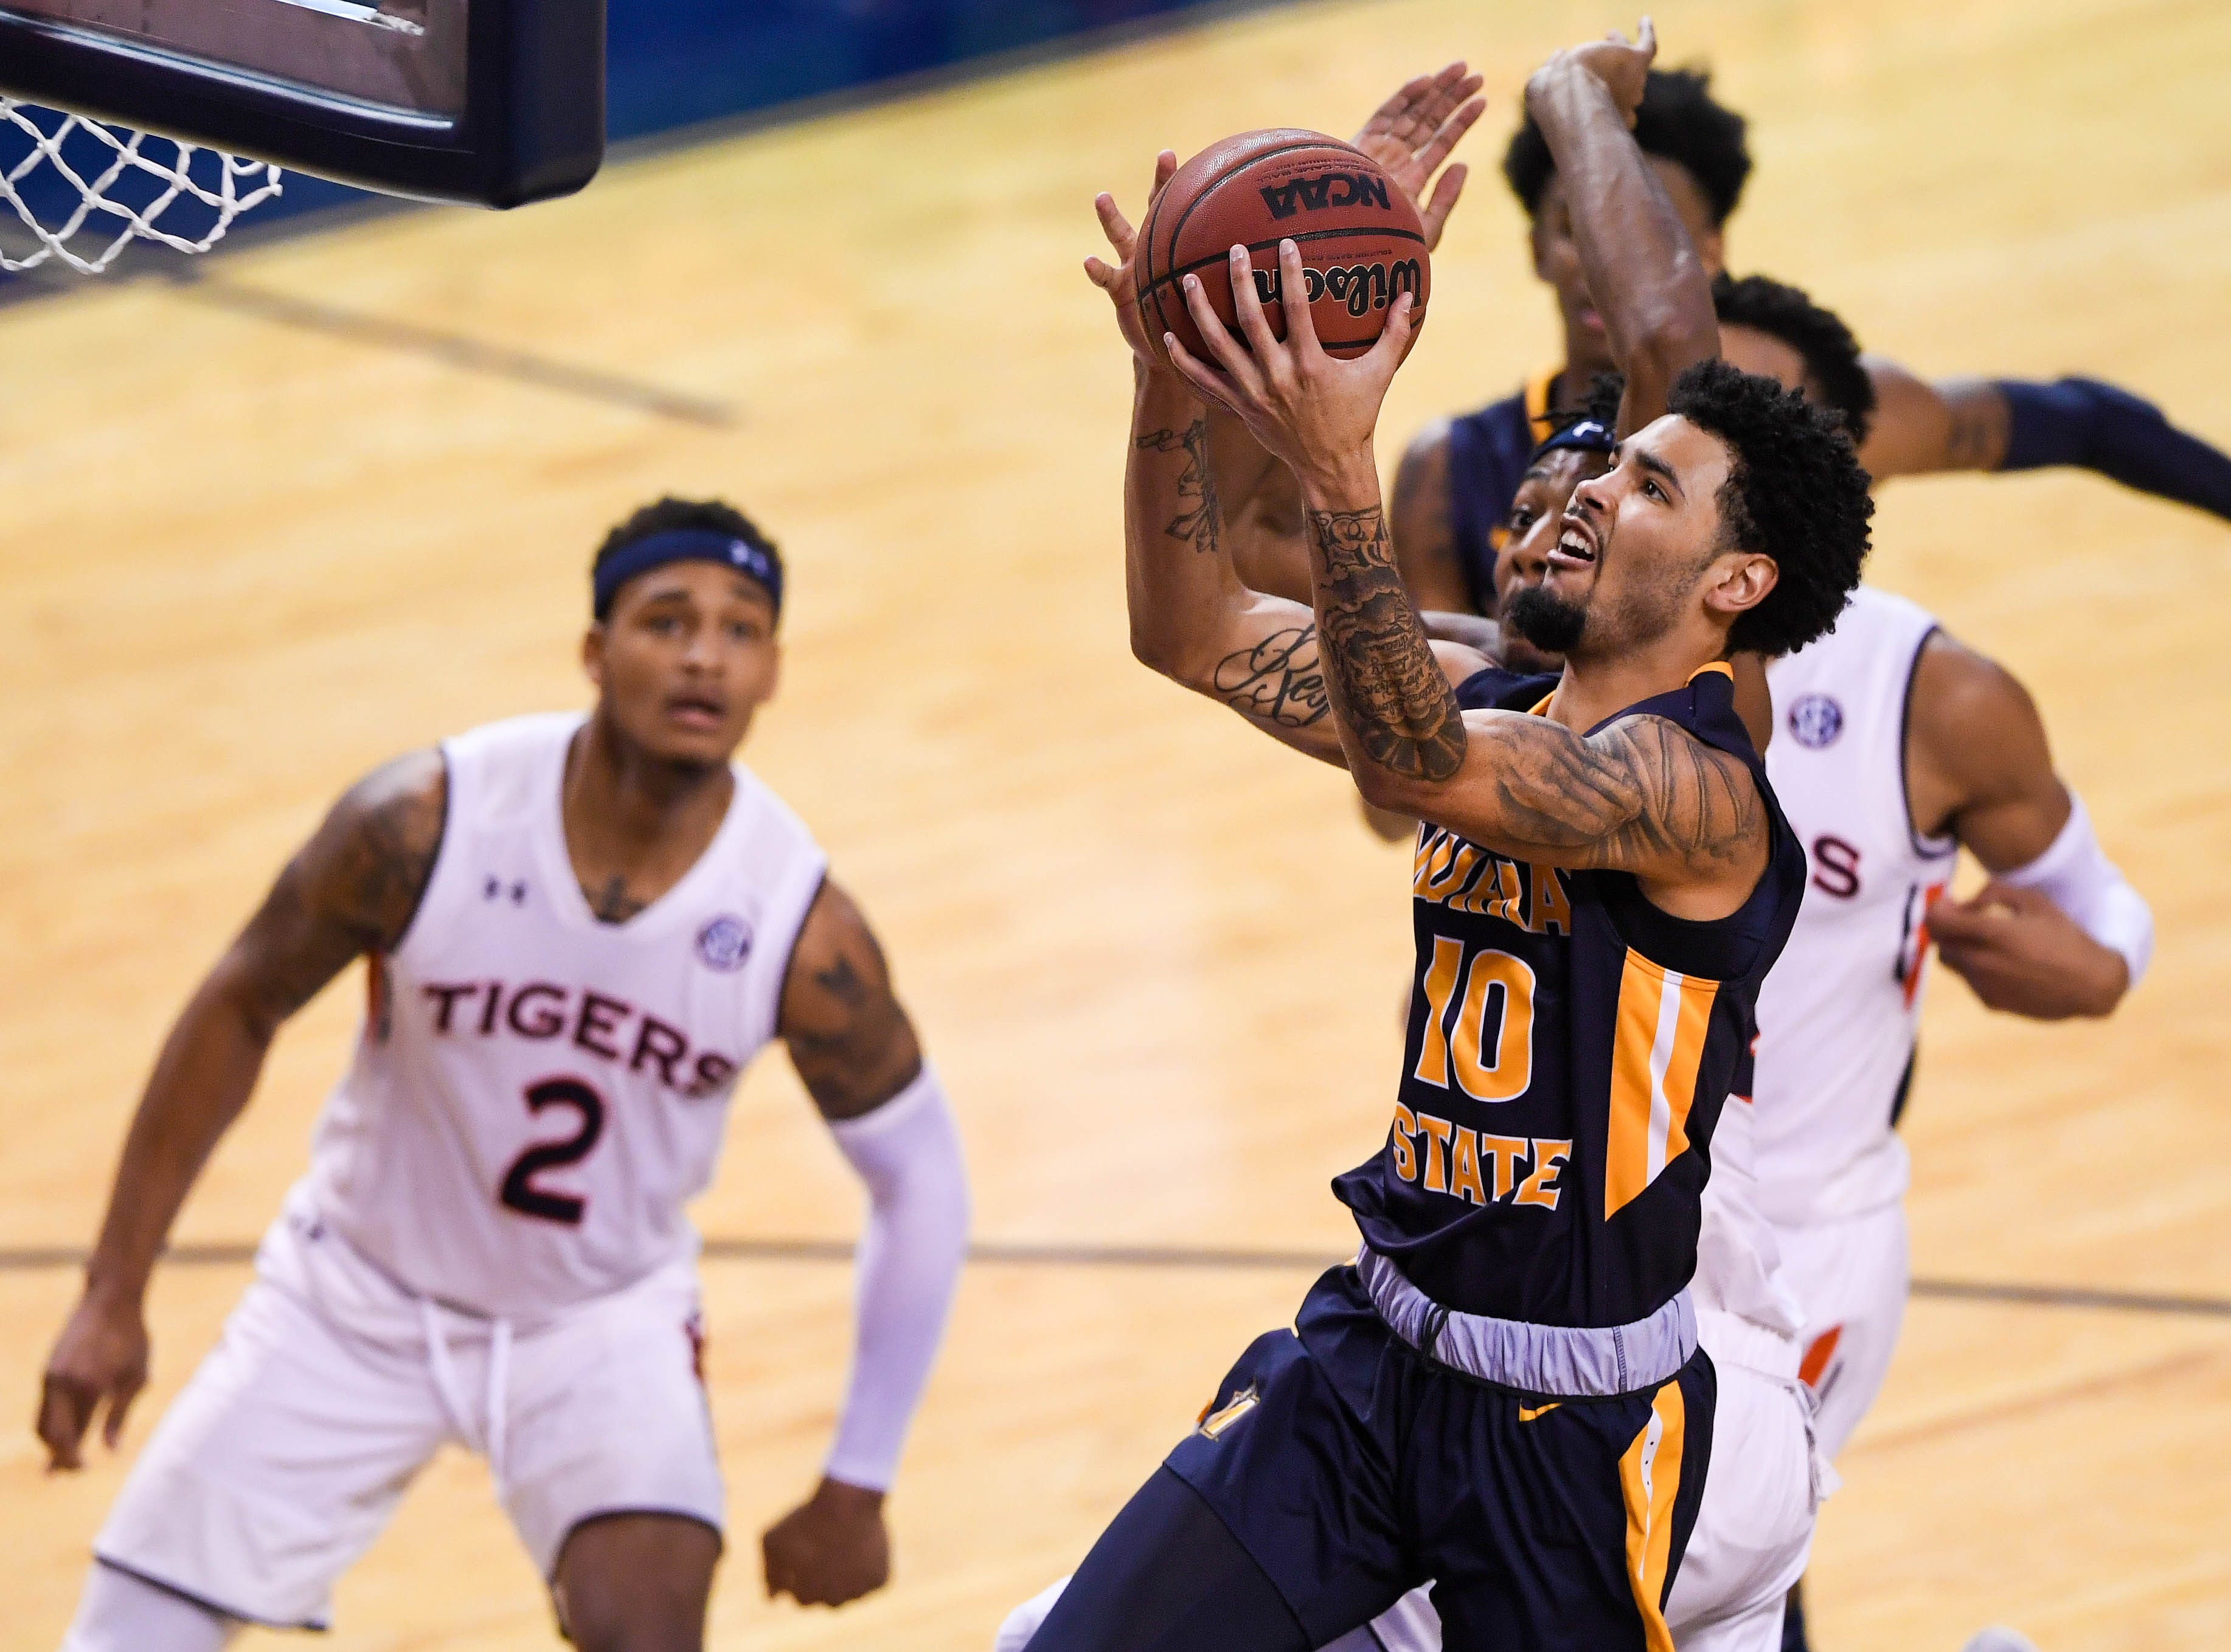 Dec 22, 2018; Auburn, AL, USA; Murray State Racers guard Tevin Brown (10) goes up for a shot as Auburn Tigers guard Bryce Brown (2) looks on during the second half at Auburn Arena. Mandatory Credit: Shanna Lockwood-USA TODAY Sports